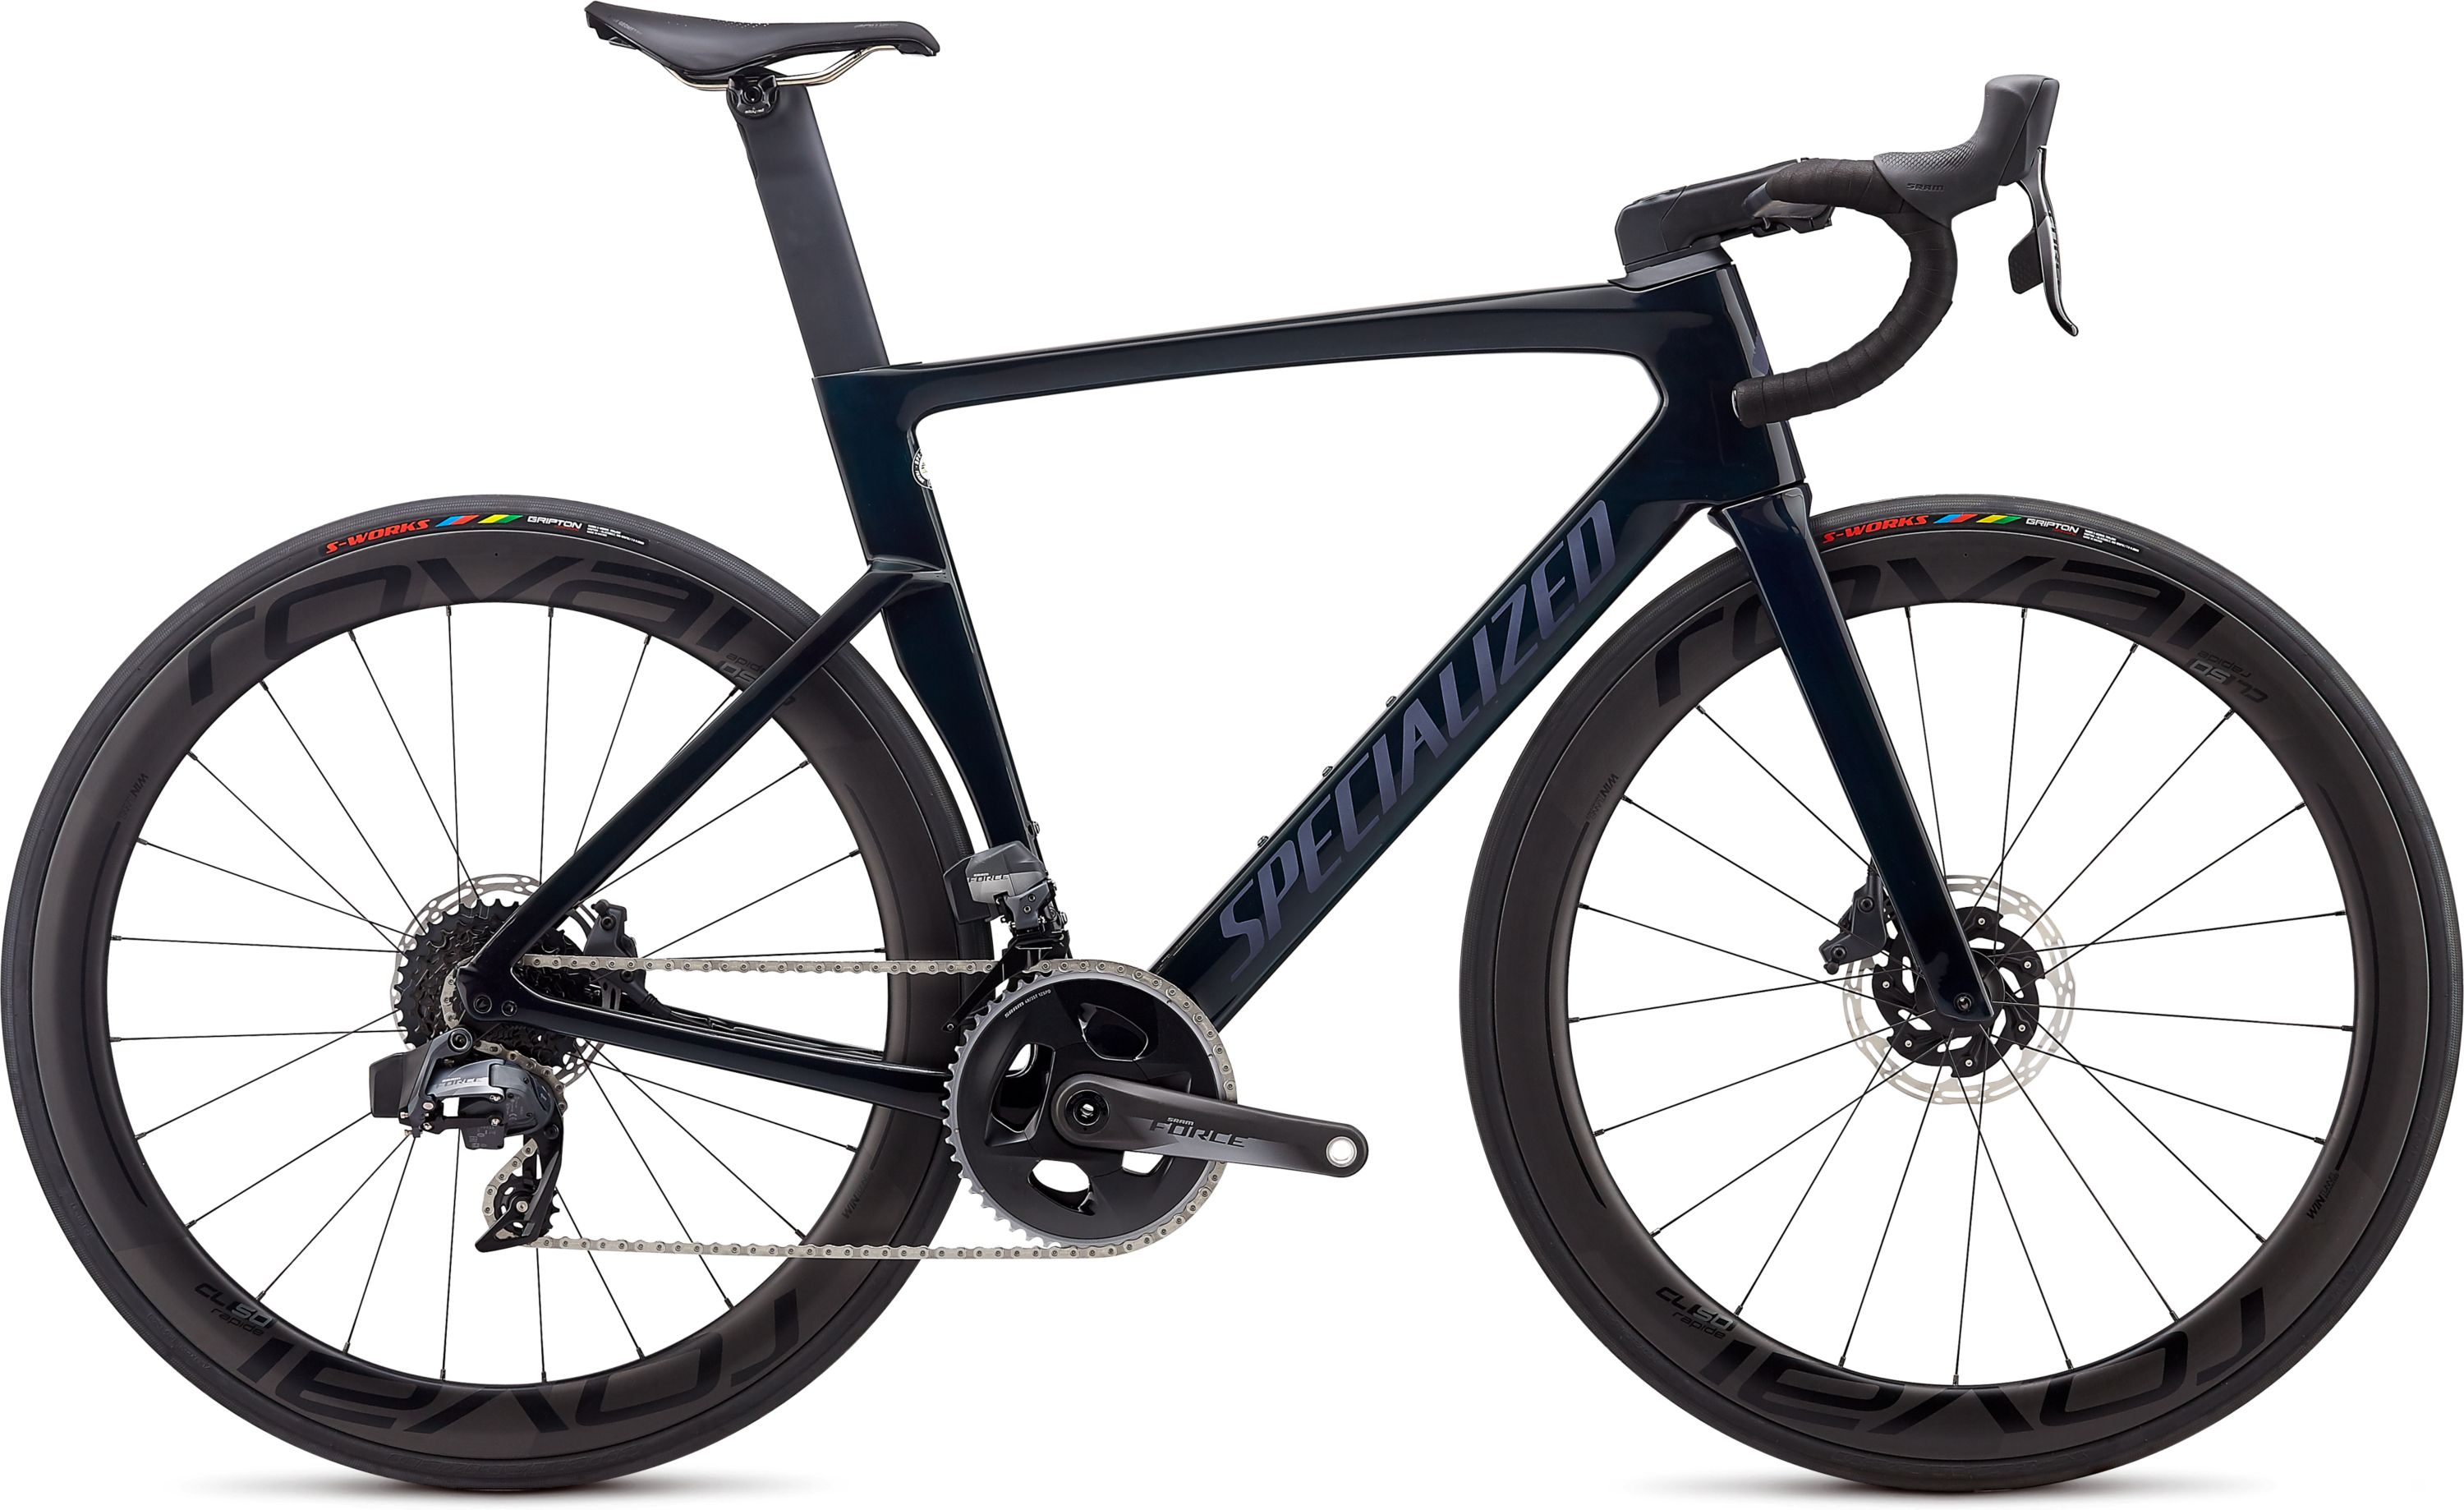 Specialized Venge Pro Sram Etap Road Bike 2020 | Road bikes